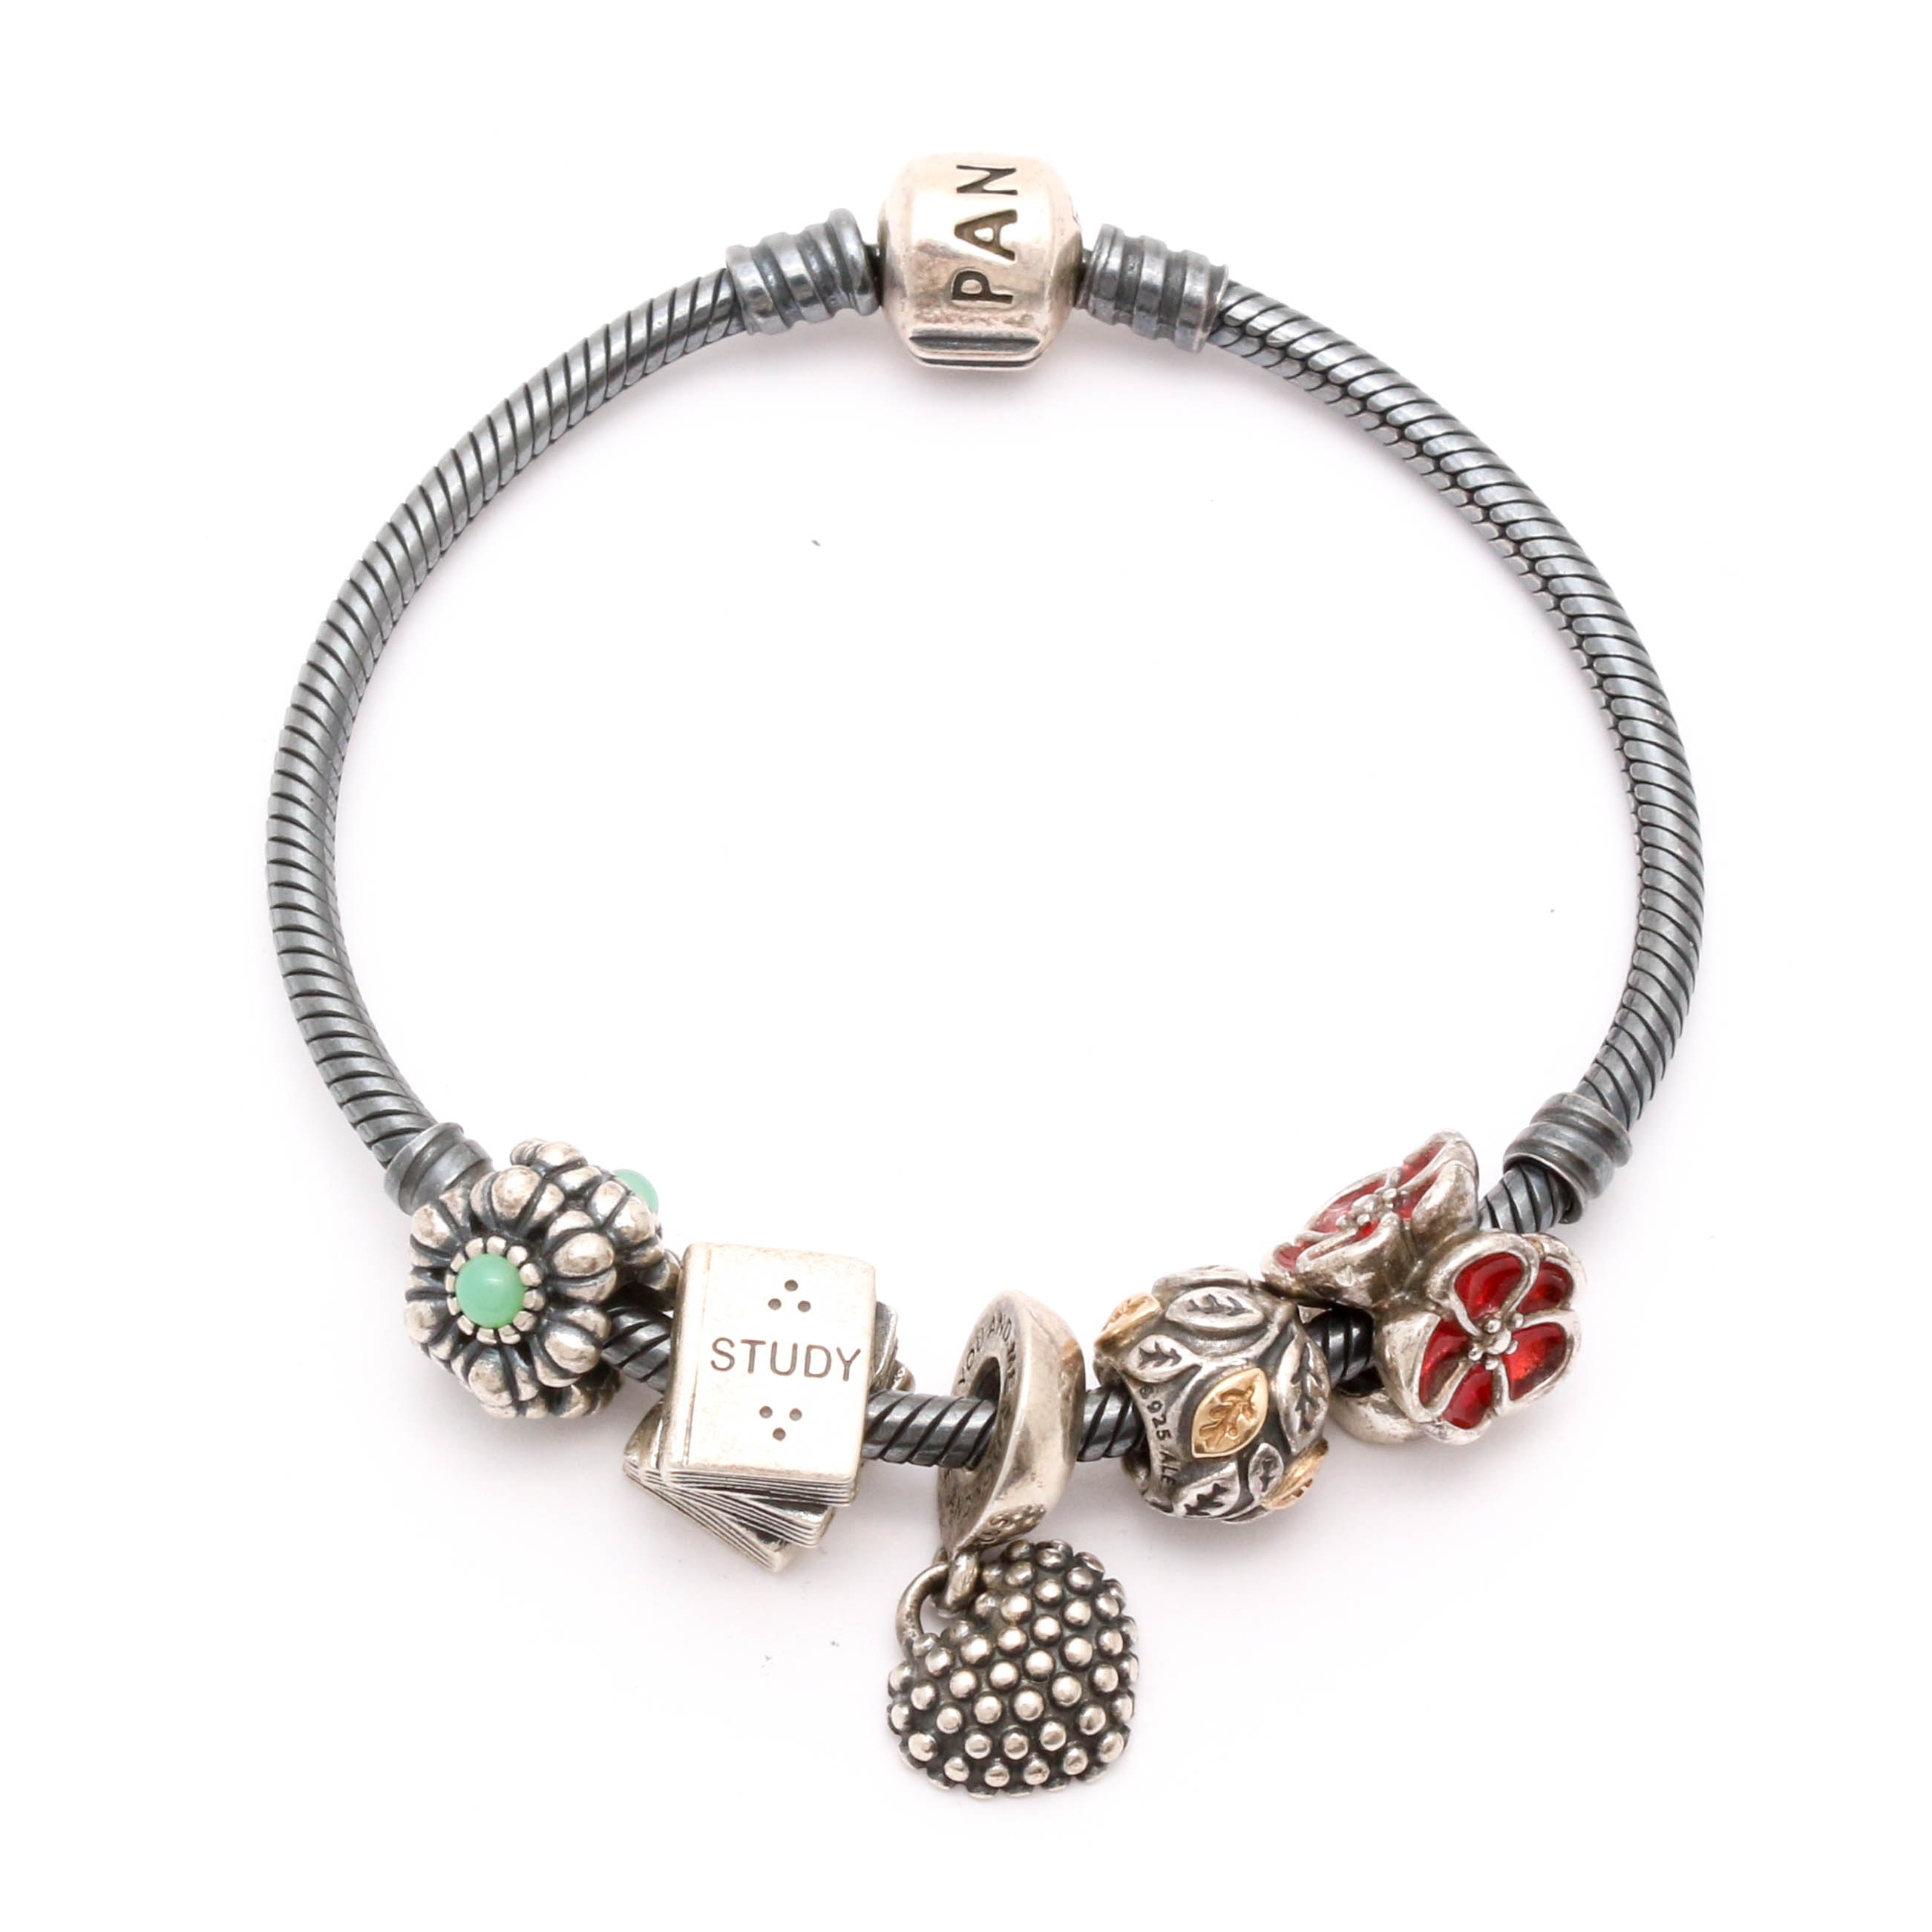 Pandora Bracelet with Sterling Silver Charms